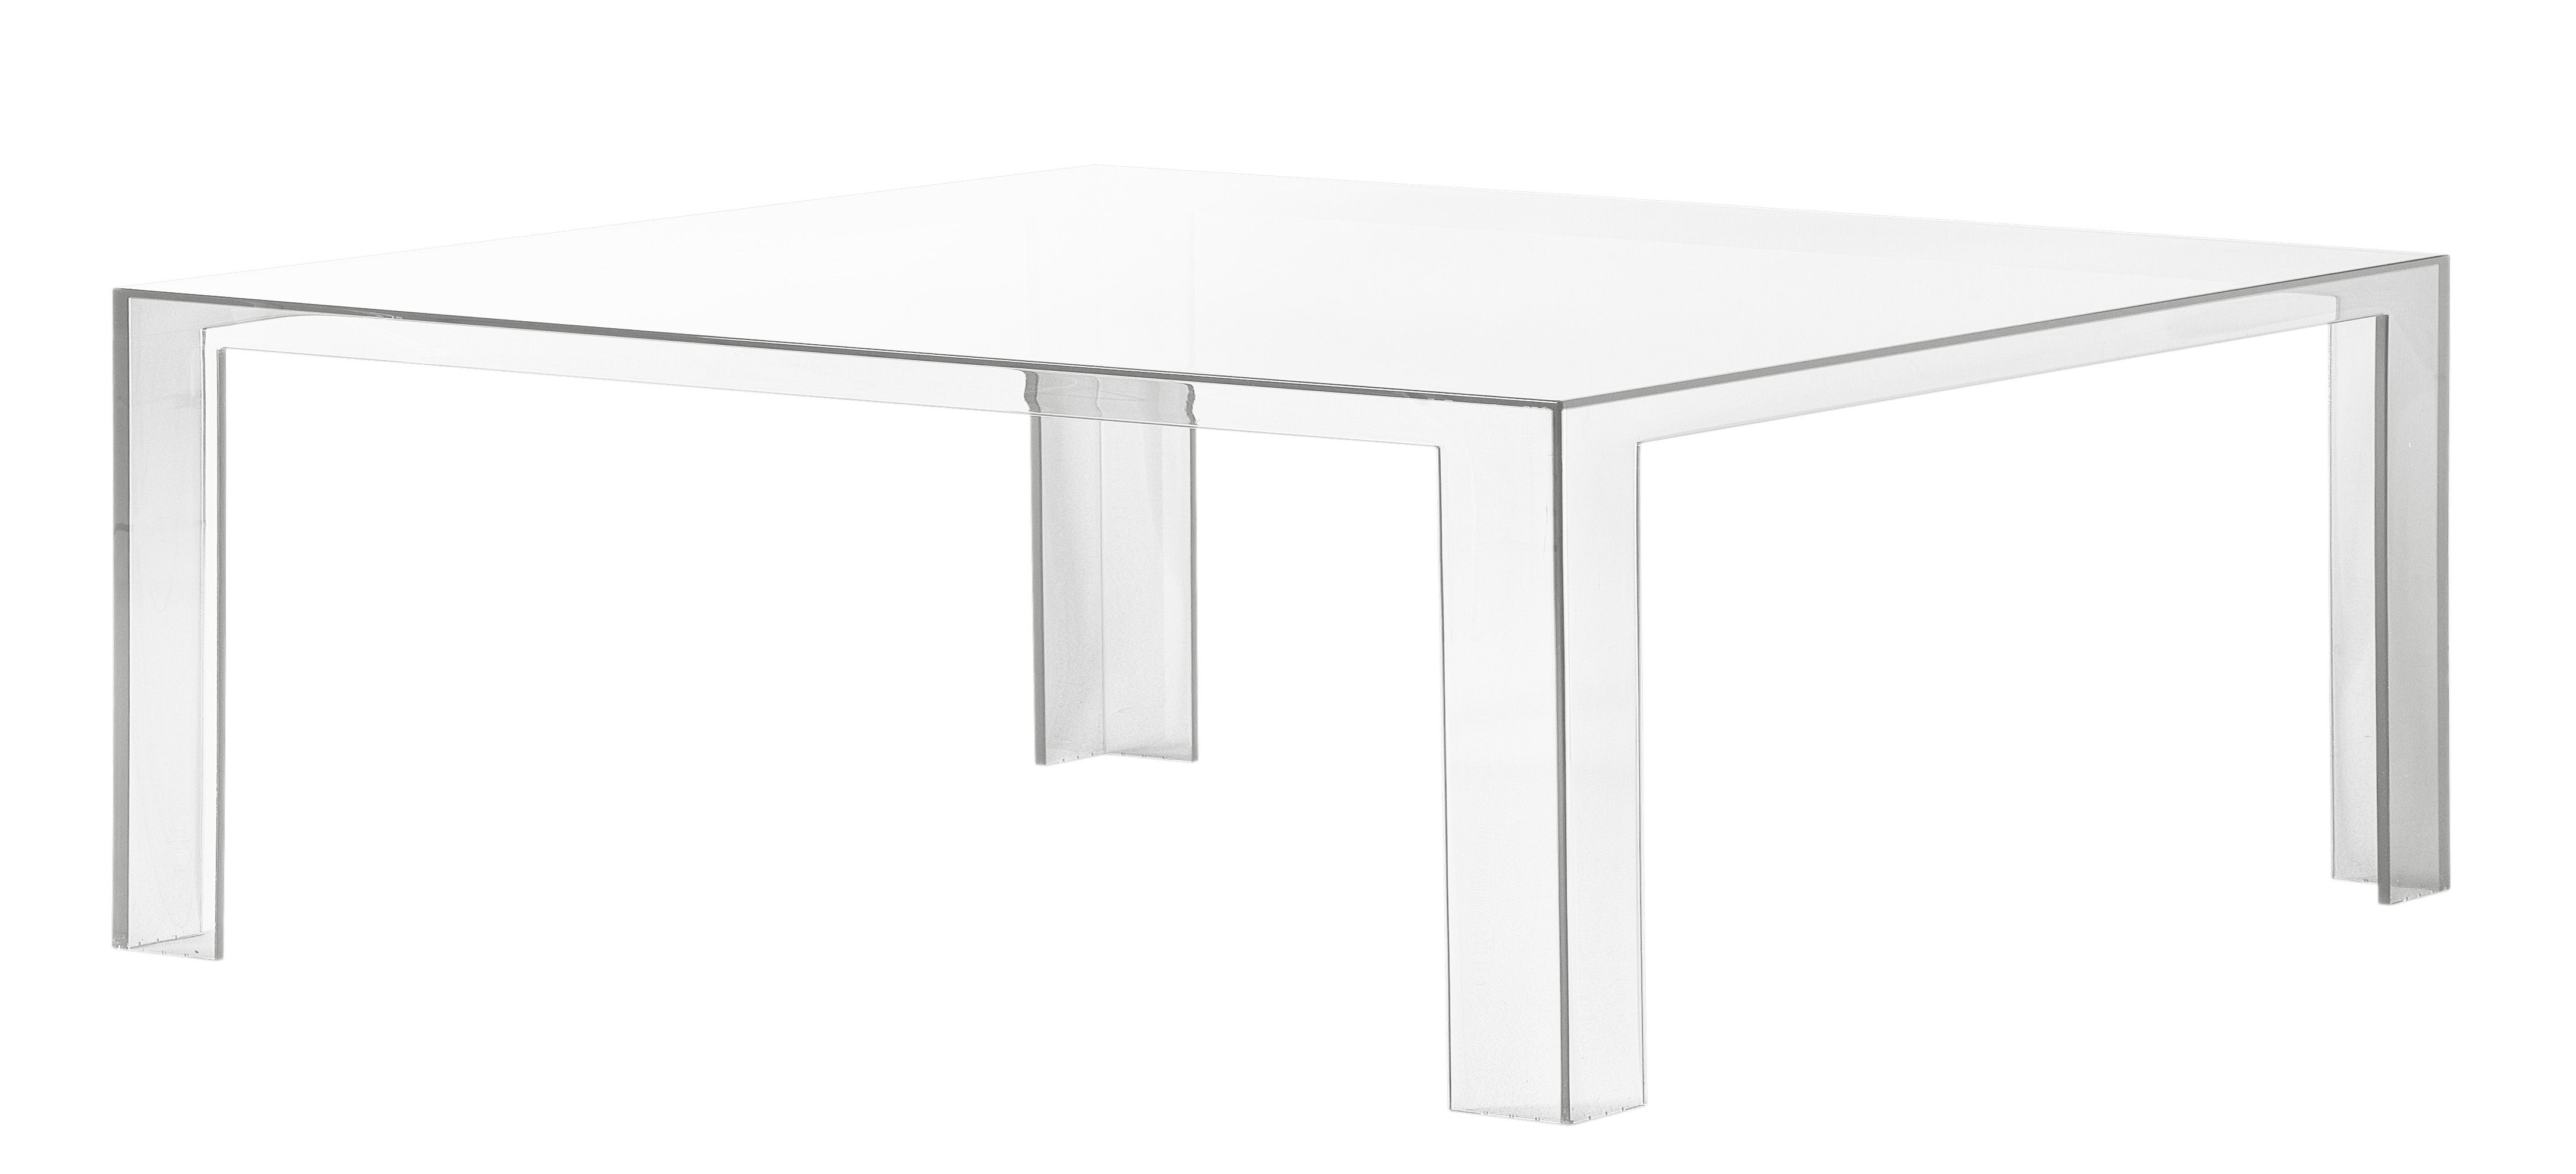 Mobilier - Table basse Invisible Low / 100 x 100 x H 31 cm - Kartell - Cristal - PMMA